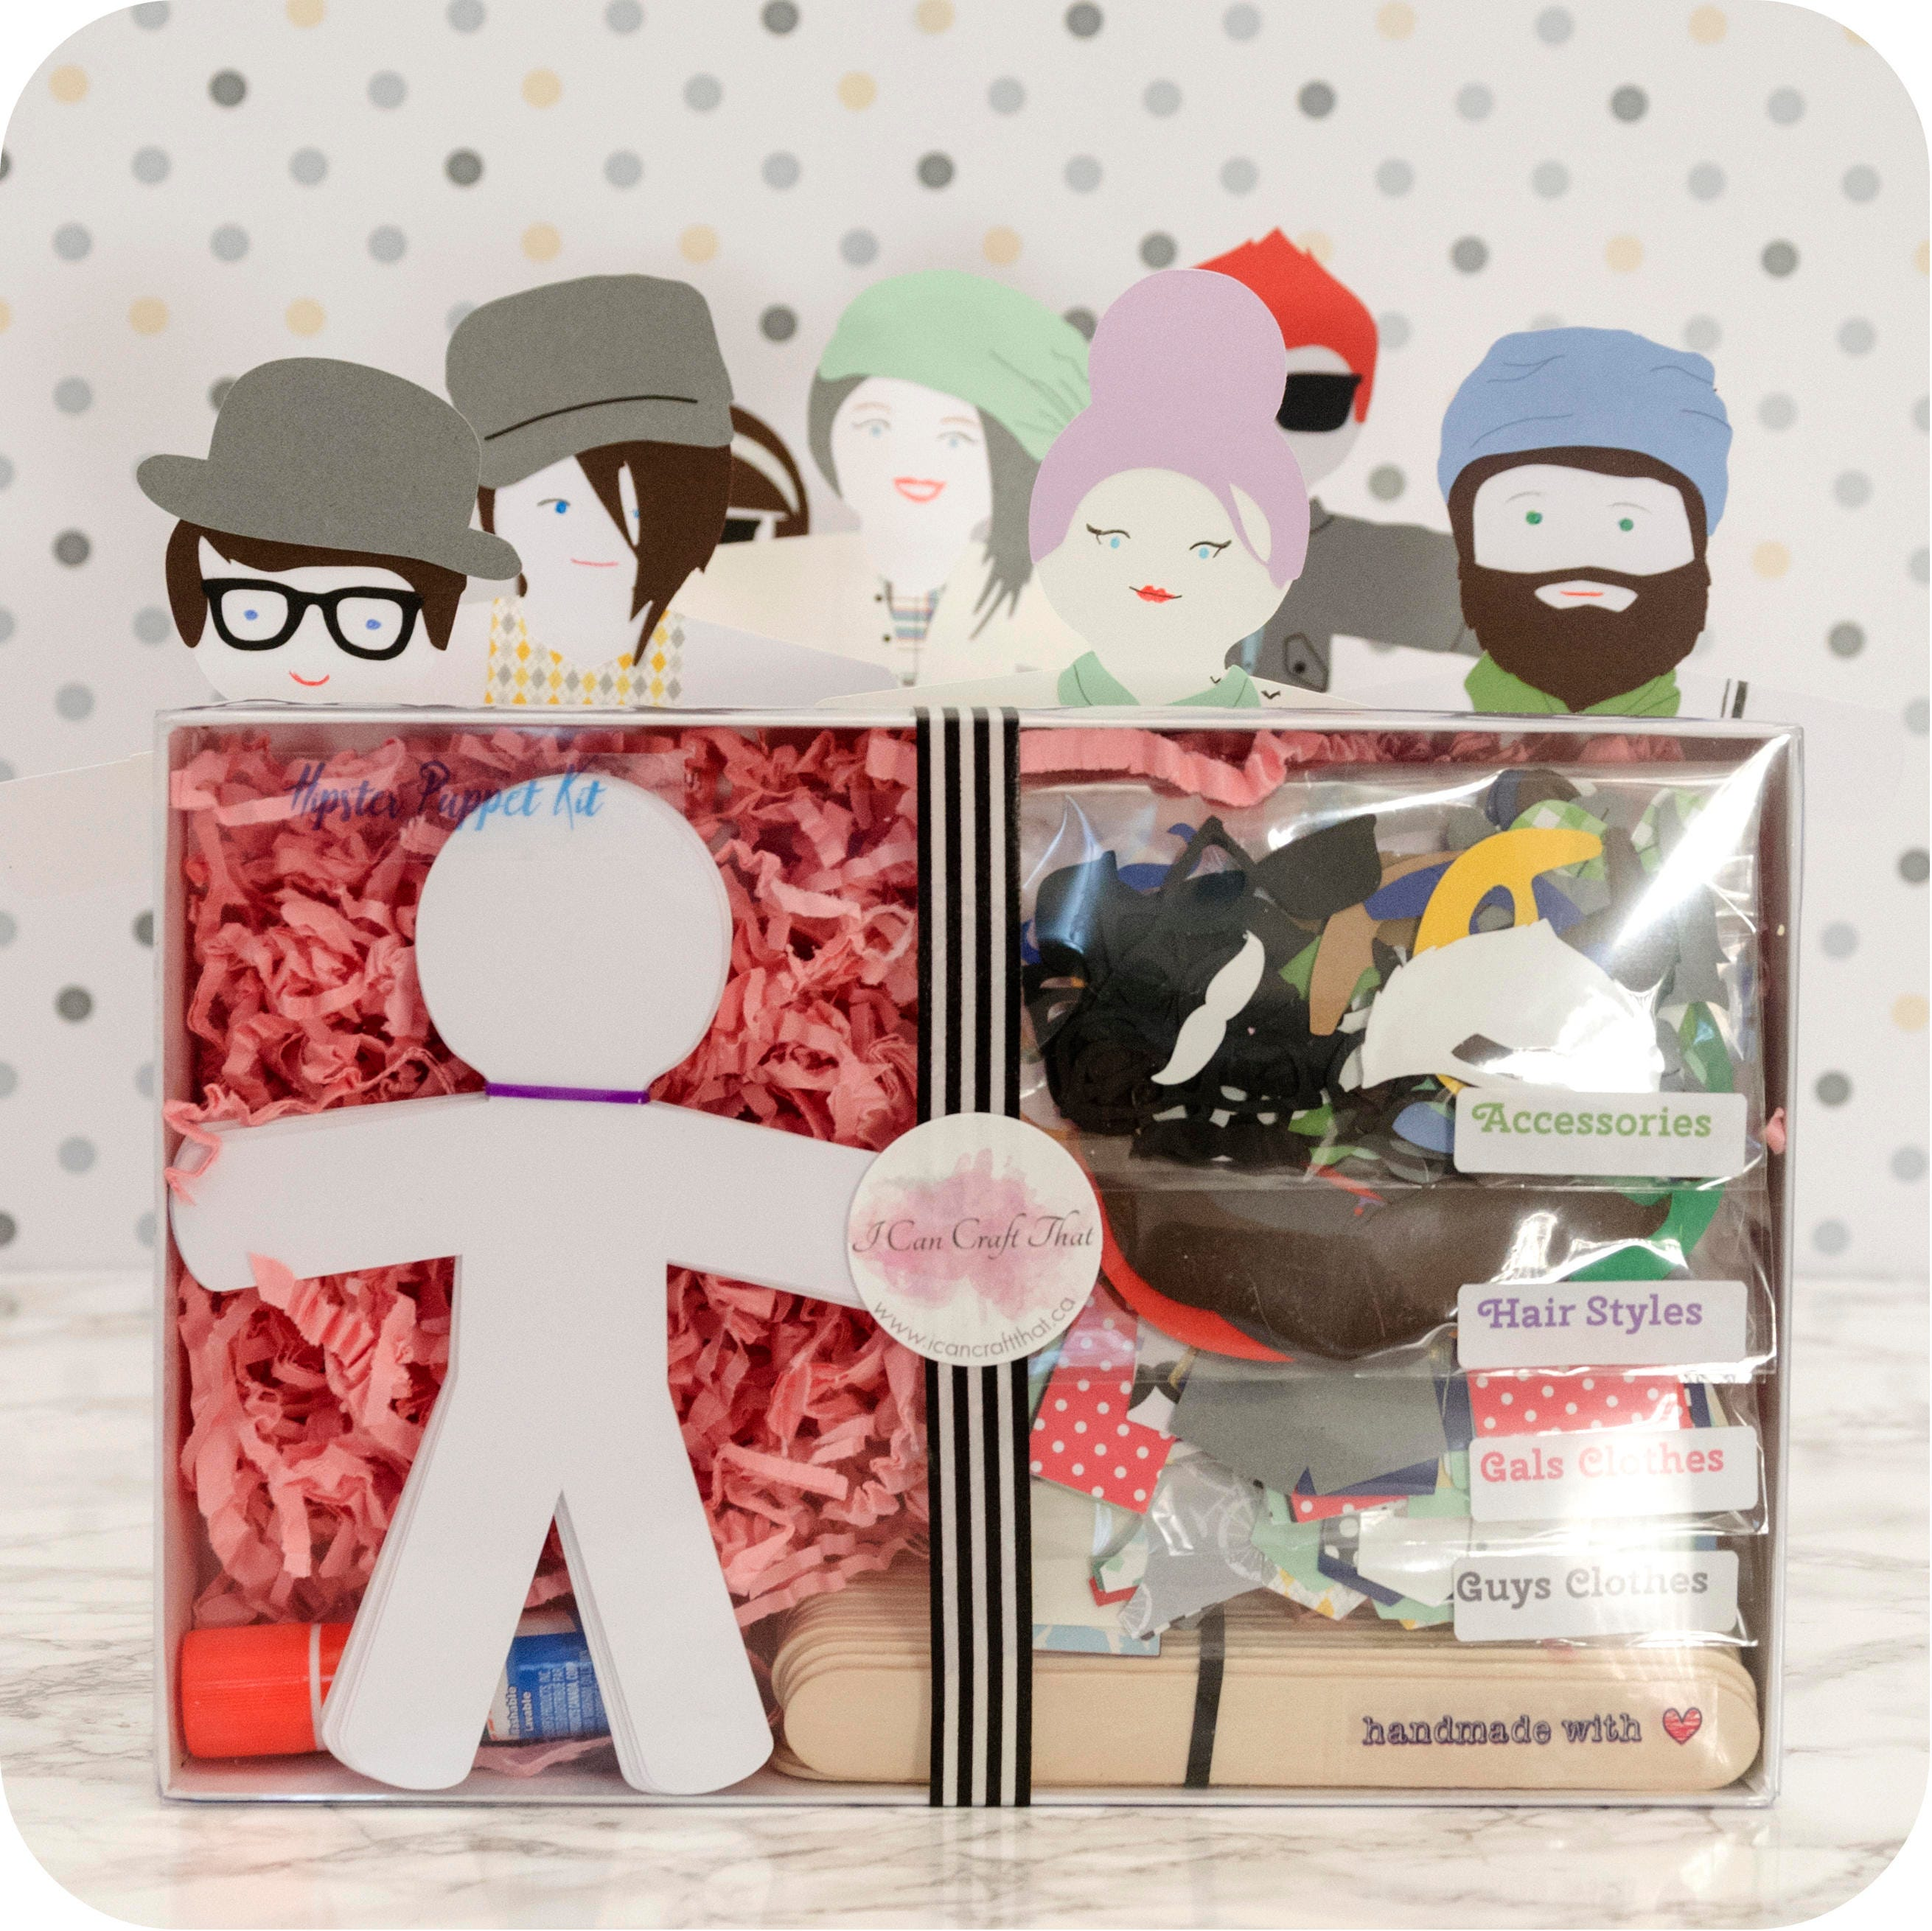 Craft kit puppets for kids and adults the hipsters addition for Craft kit for adults